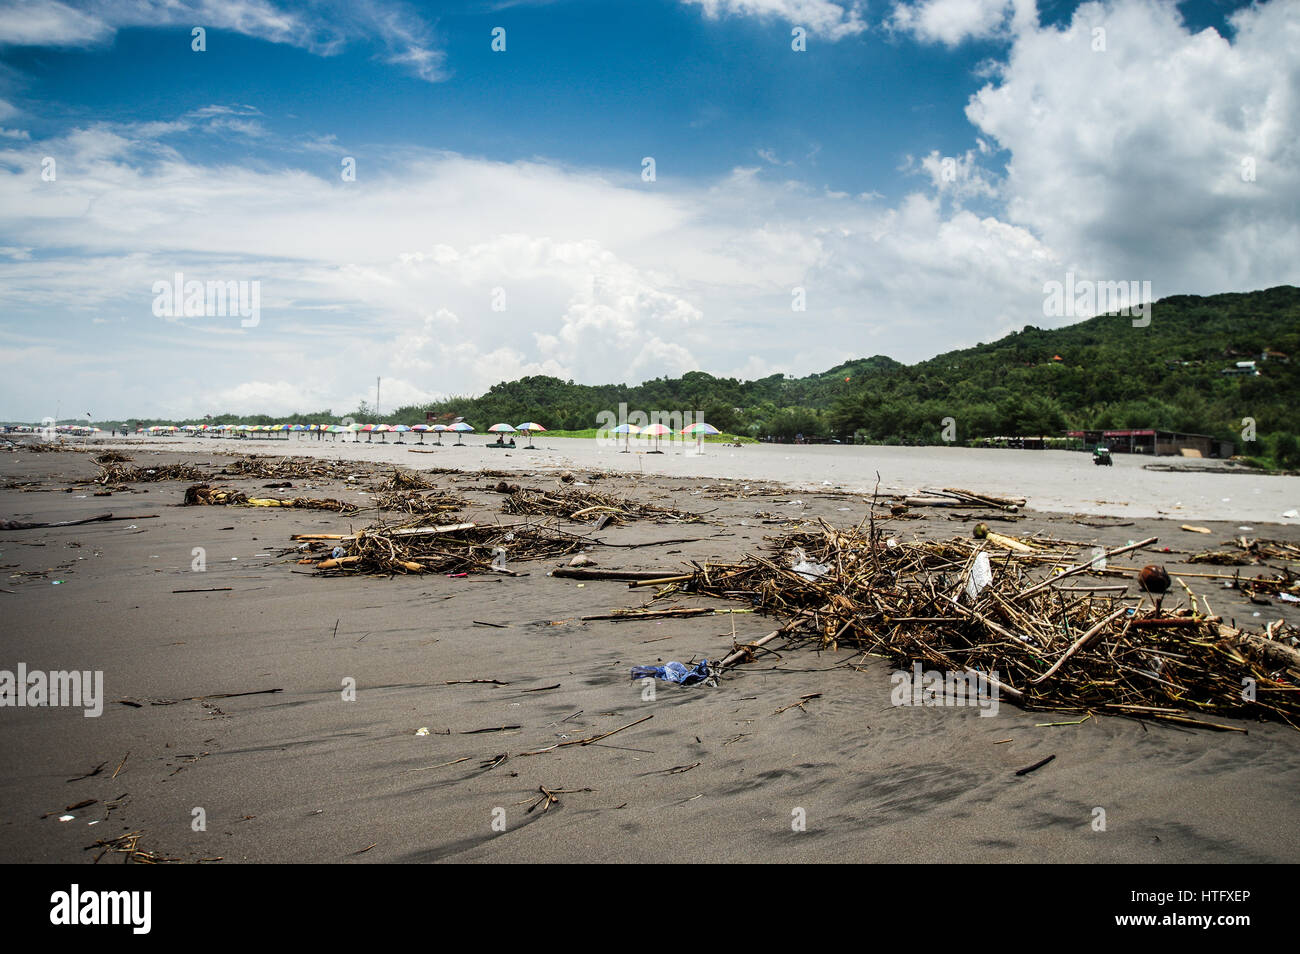 Polluted Parangtritis Beach in Central Java, Indonesia - Stock Image